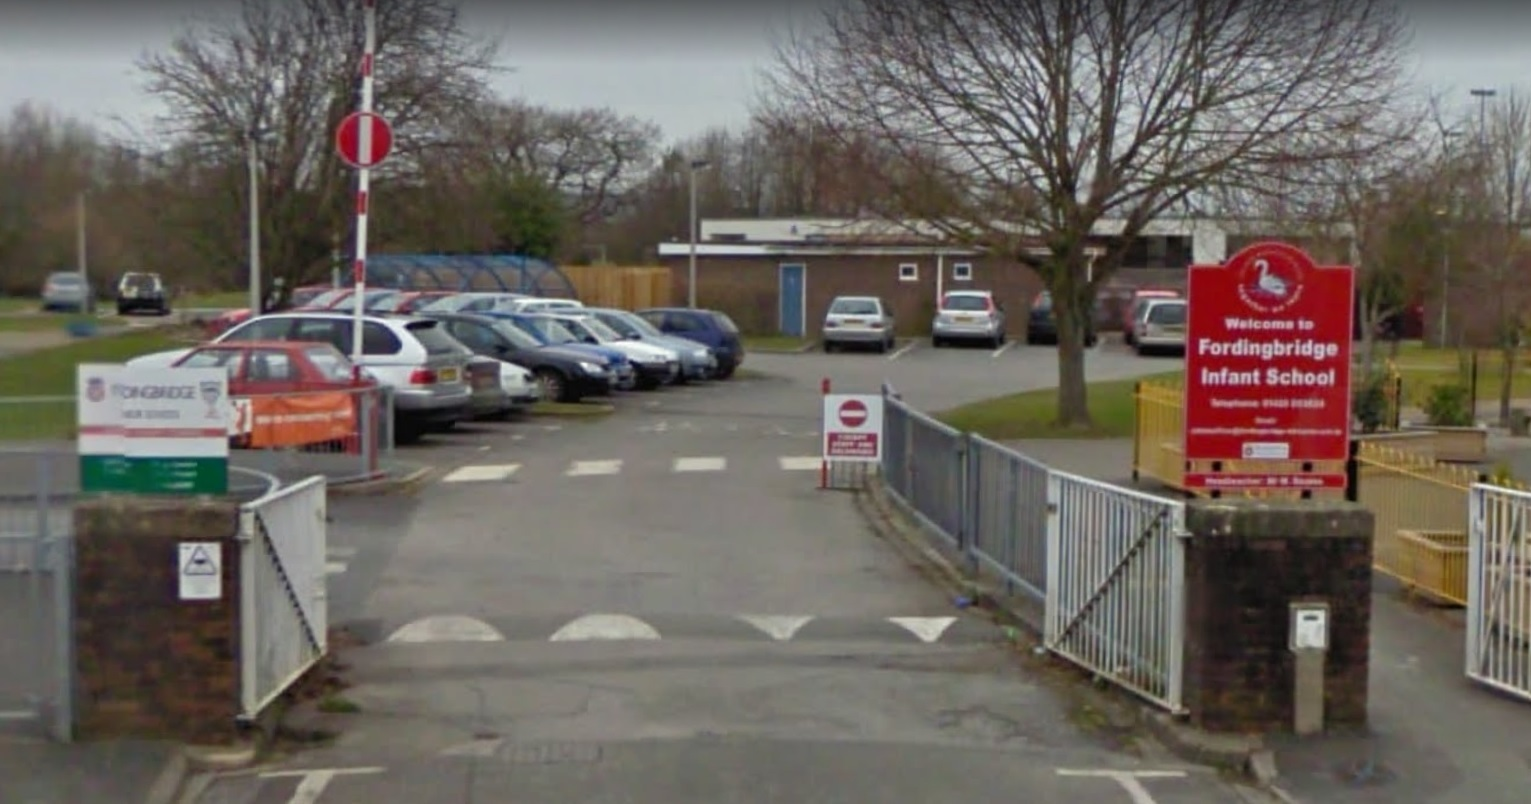 Fordingbridge Infant School and Fordingbridge Junior School have launched a consultation over plans to become a federation. Picture: Google Street View